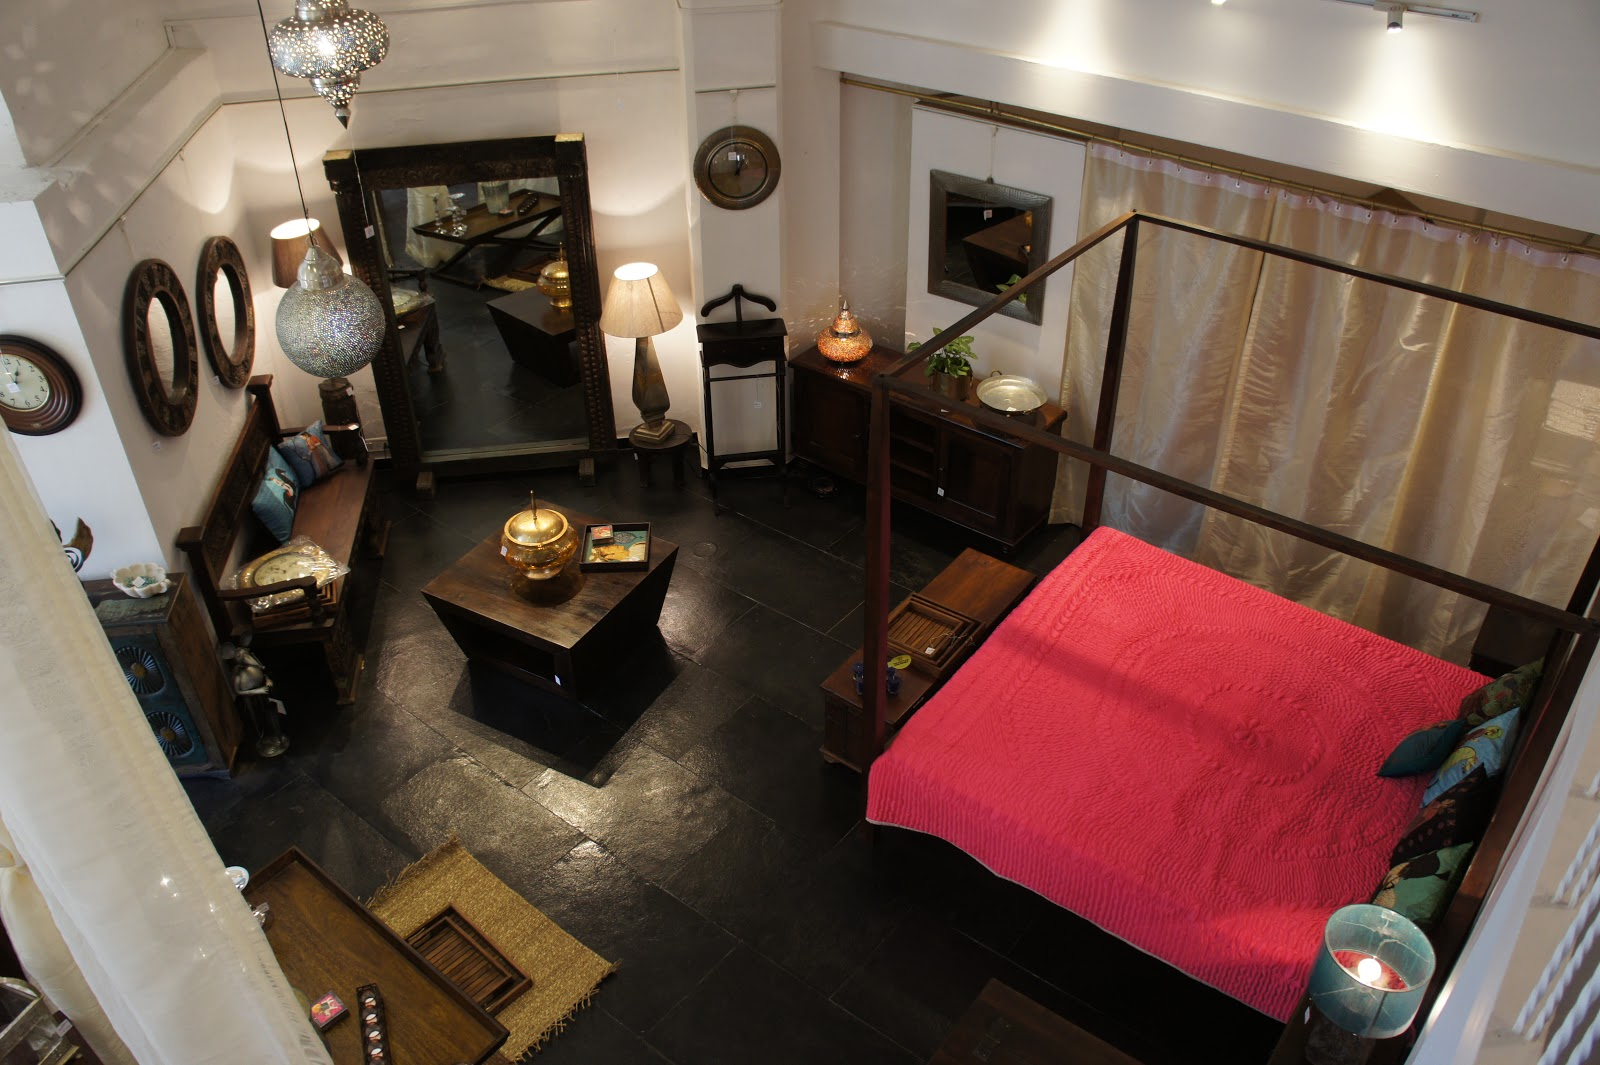 Magnolia Home Furnishing Store Mumbai (It's Fab!)